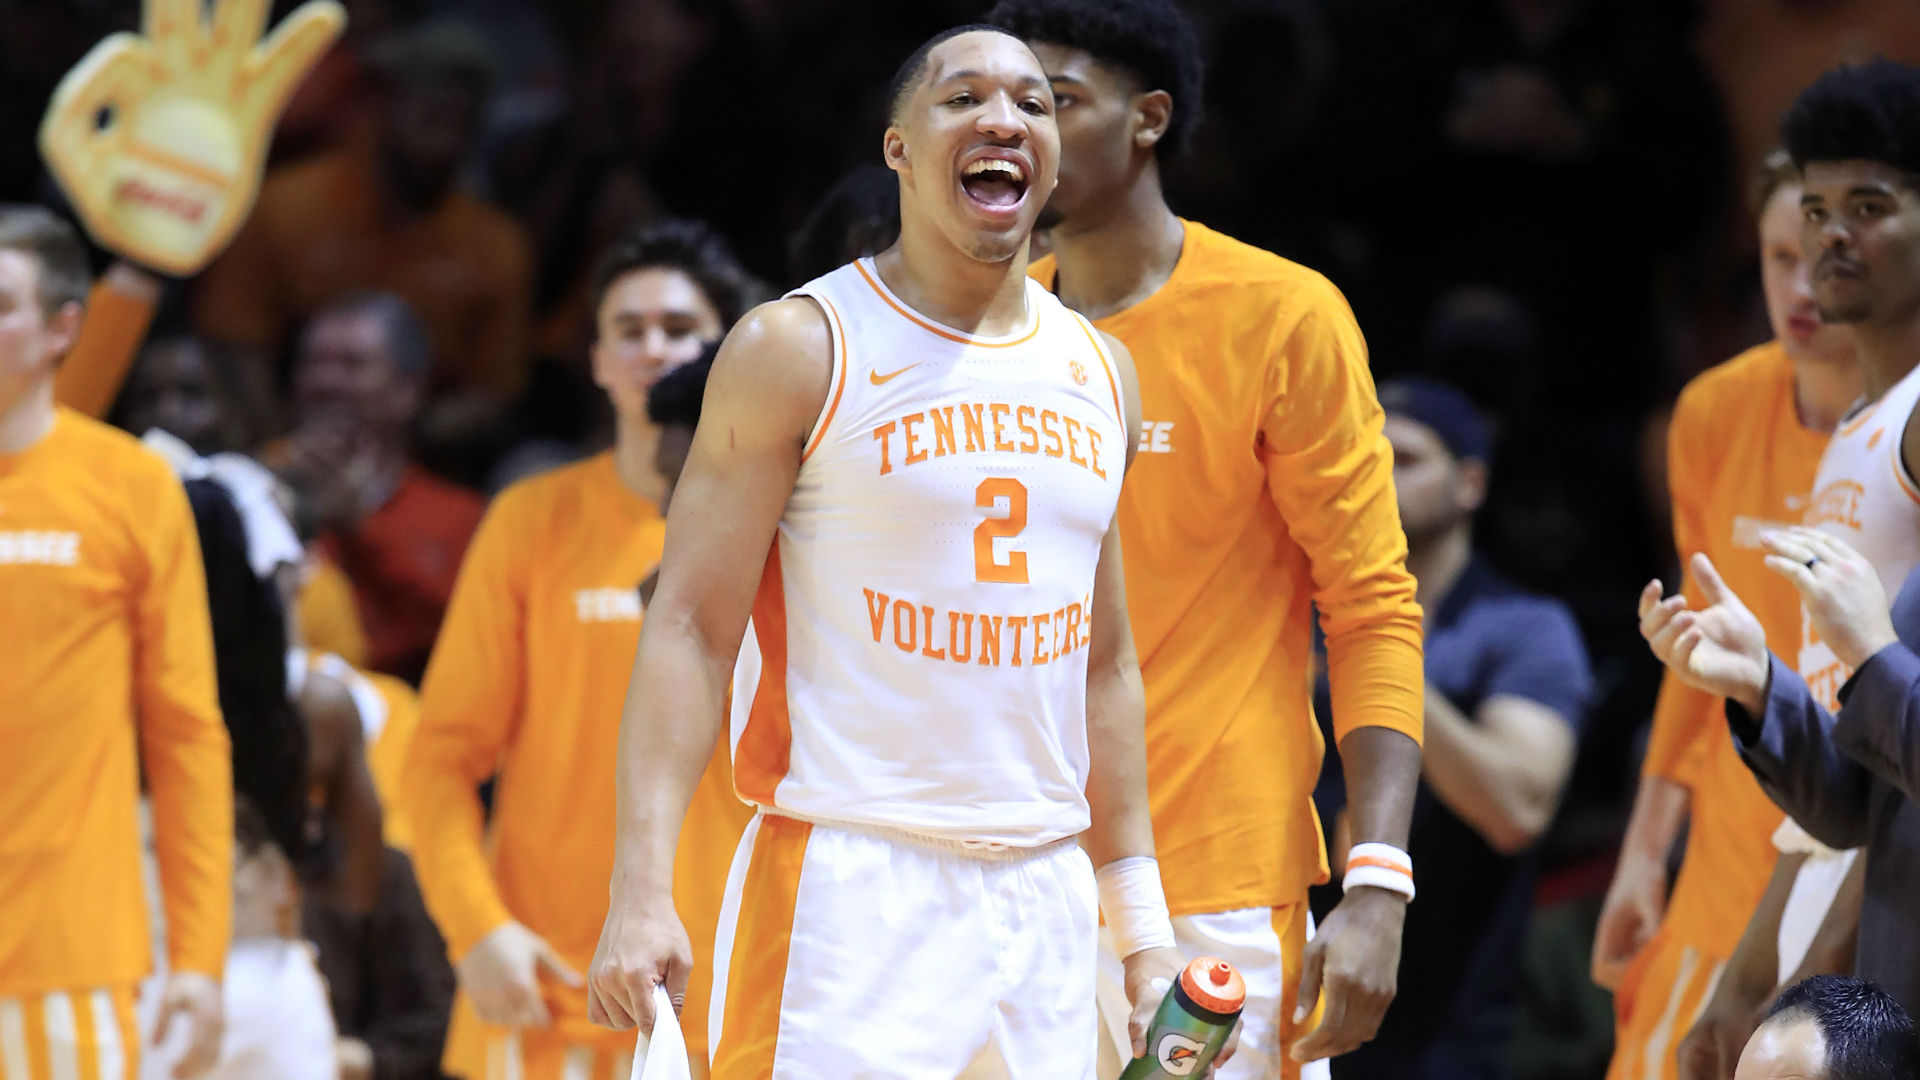 Vols beat No. 4 Kentucky, 71-52